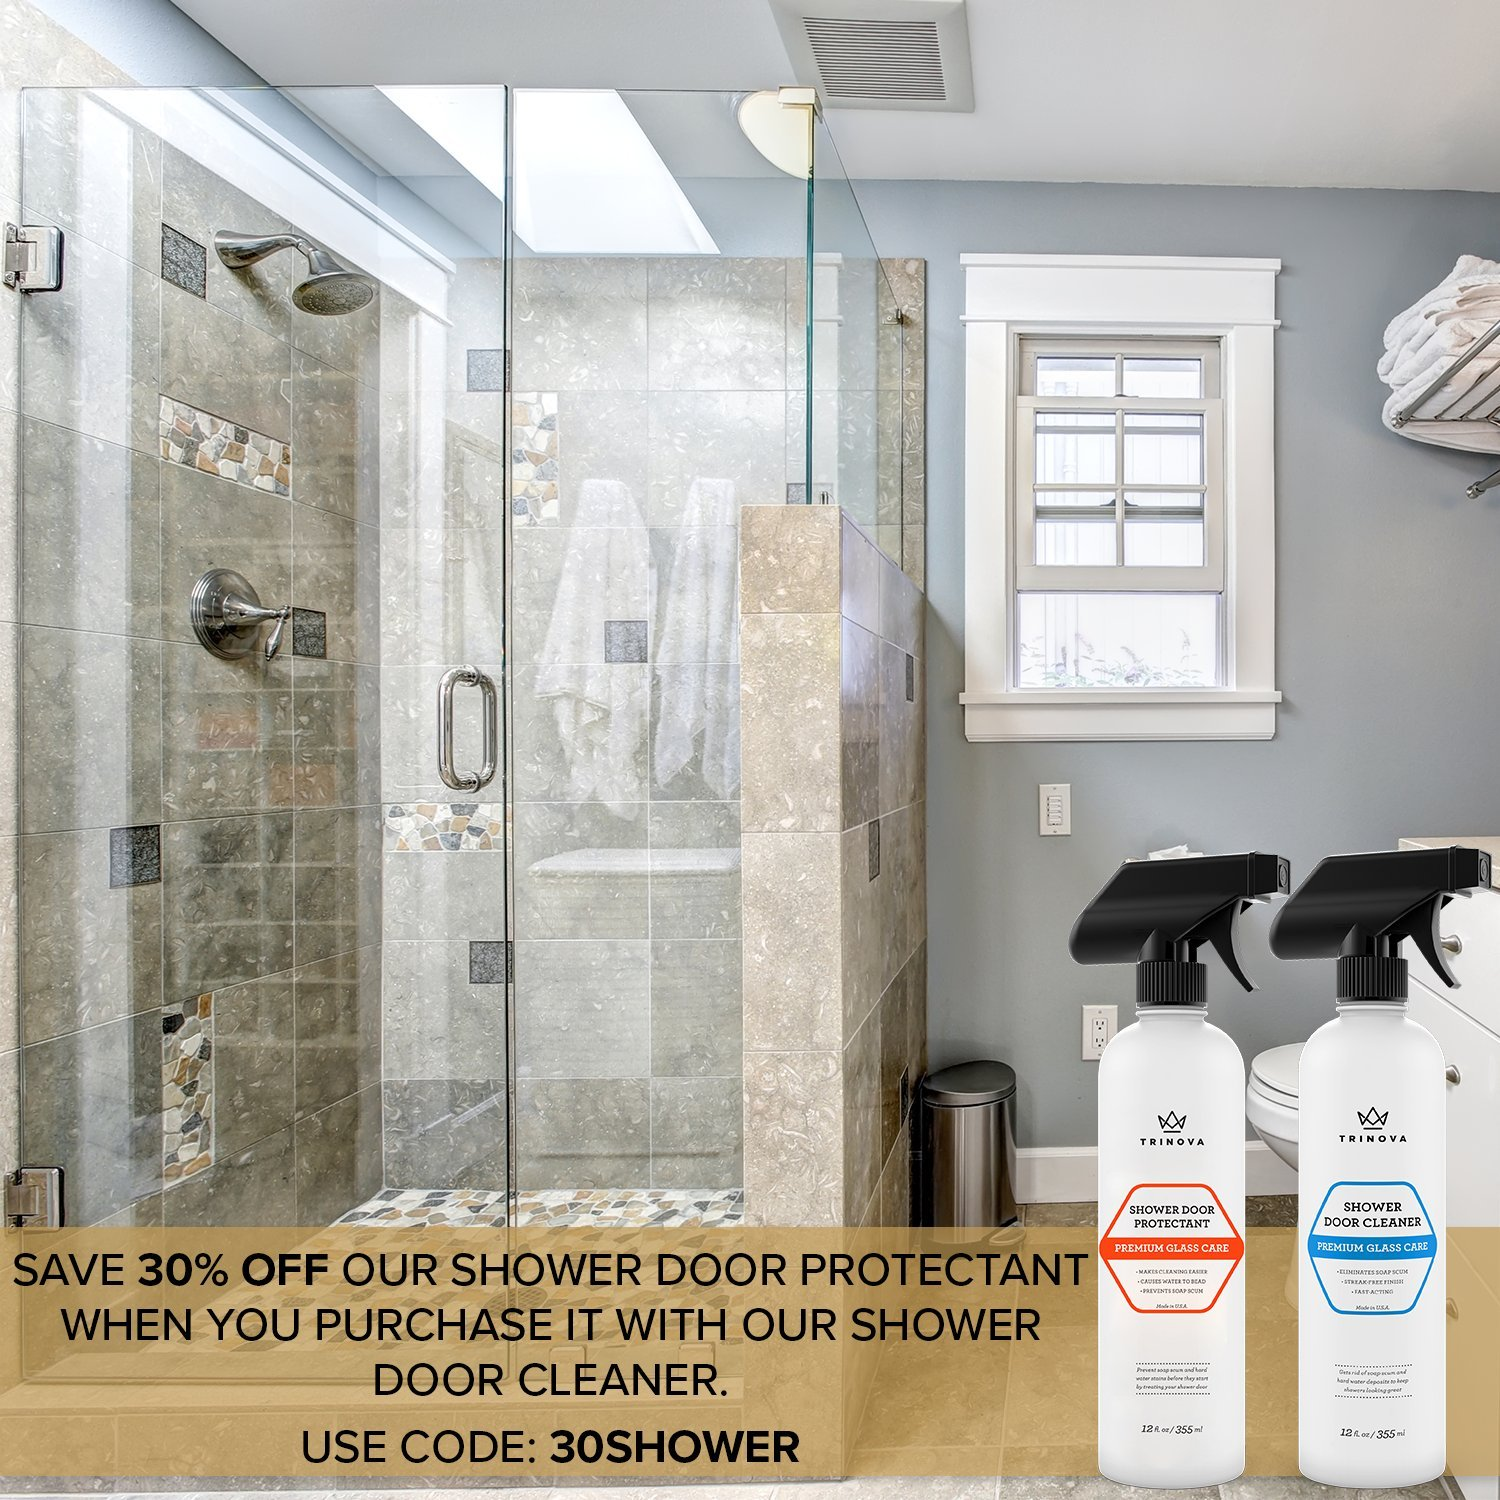 Com Shower Door Water Repellent Protects Glass From Soap Scum Mold Mildew Hydrophobic Protectant Makes Cleaning Easier And Keeps Surface Looking